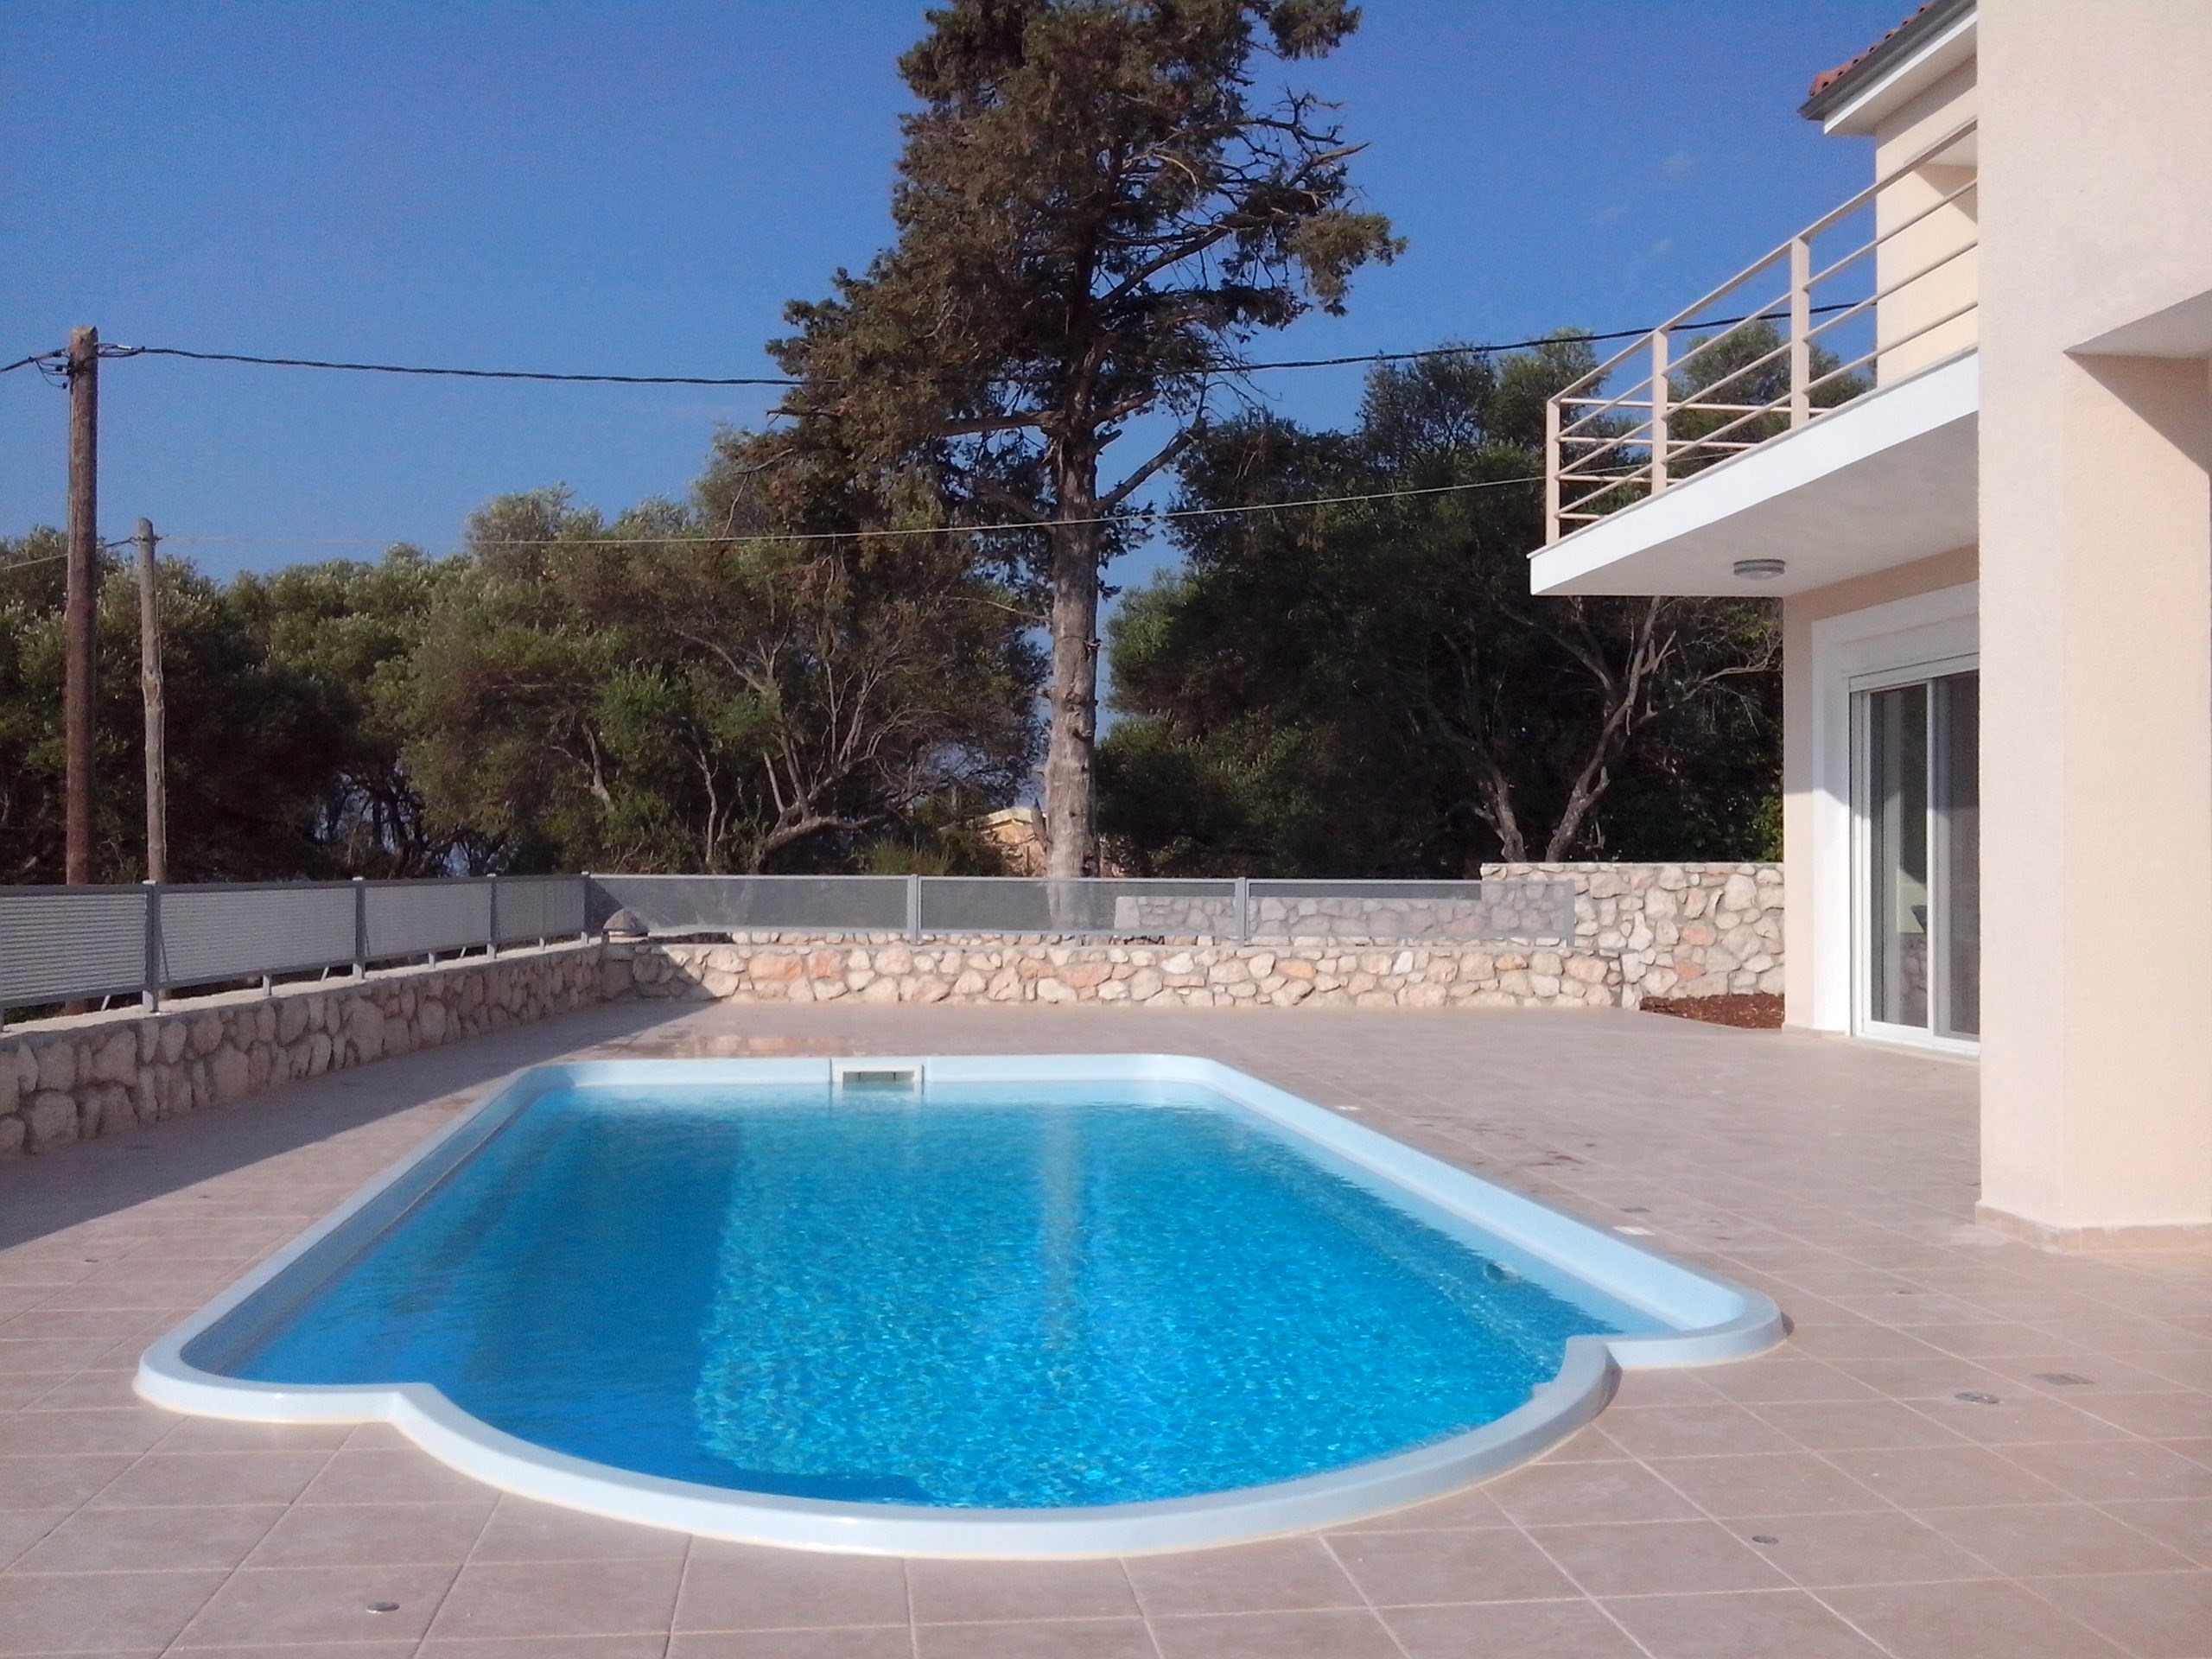 Villa Eirene pool area